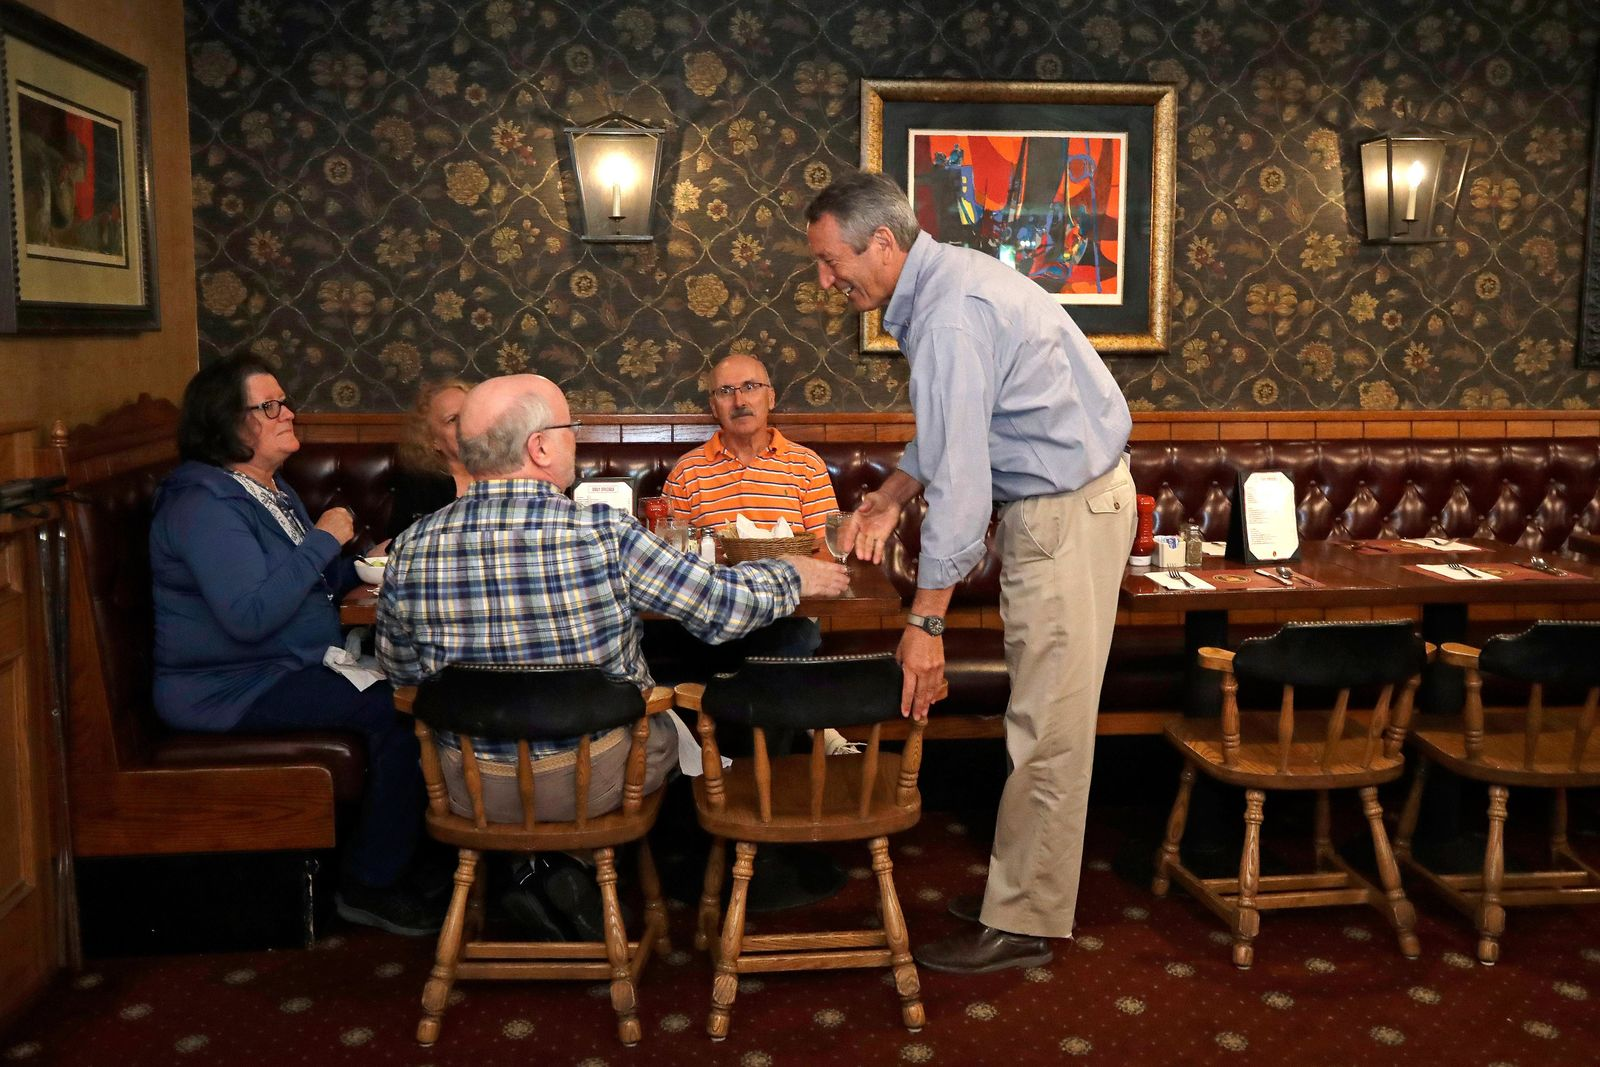 Republican presidential candidate, former South Carolina Gov. Mark Sanford, right, chats with{ }patrons at the Puritan Backroom restaurant, during a campaign stop, Thursday, Sept. 19, 2019, in Manchester, N.H. (AP Photo/Elise Amendola)